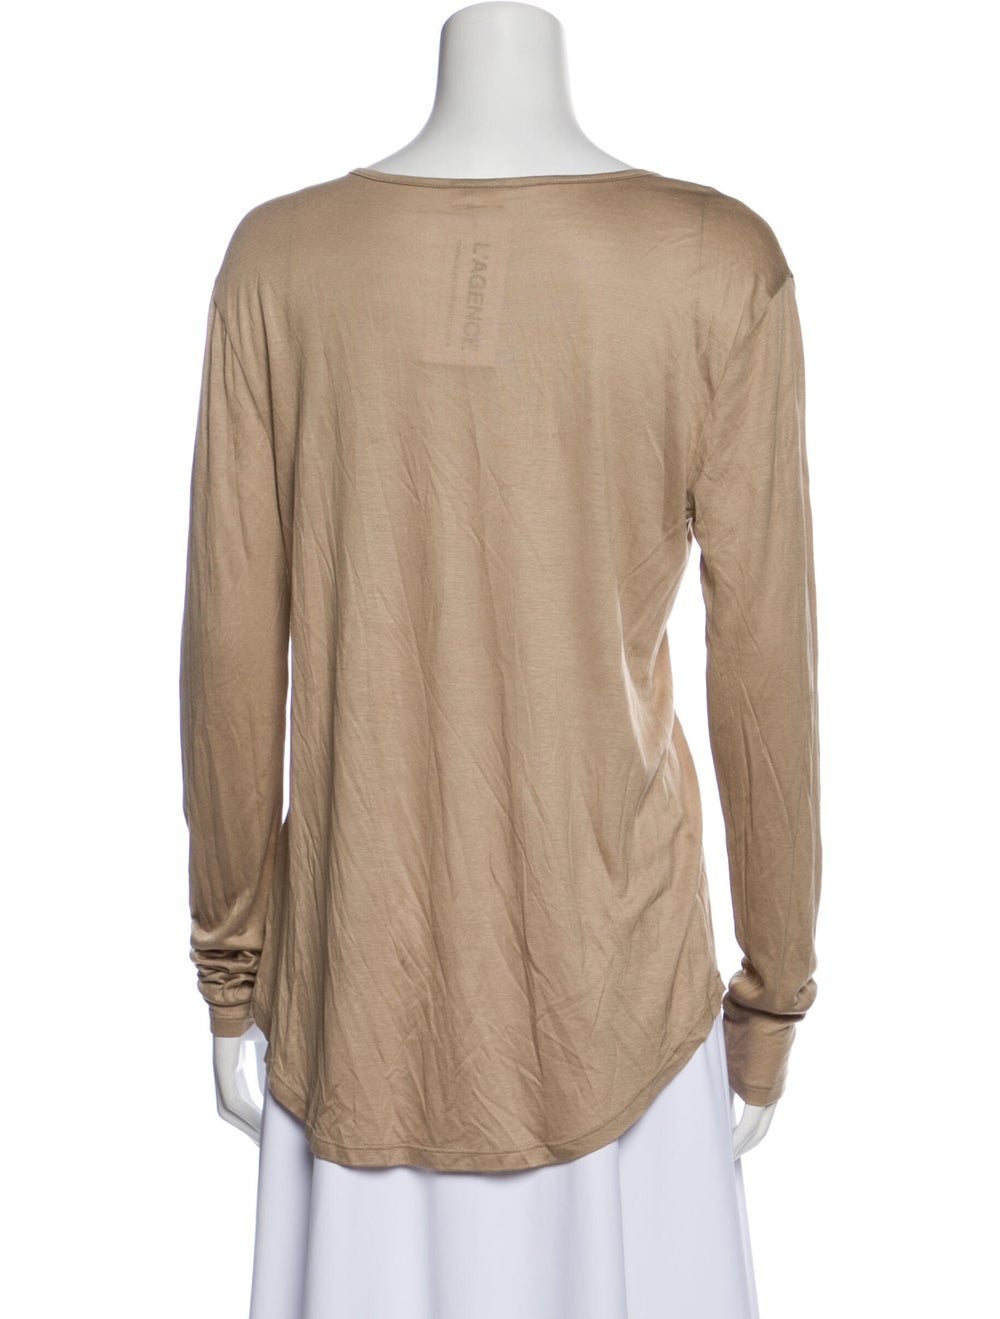 L'Agence Scoop Neck Long Sleeve T-Shirt Brown - image 3